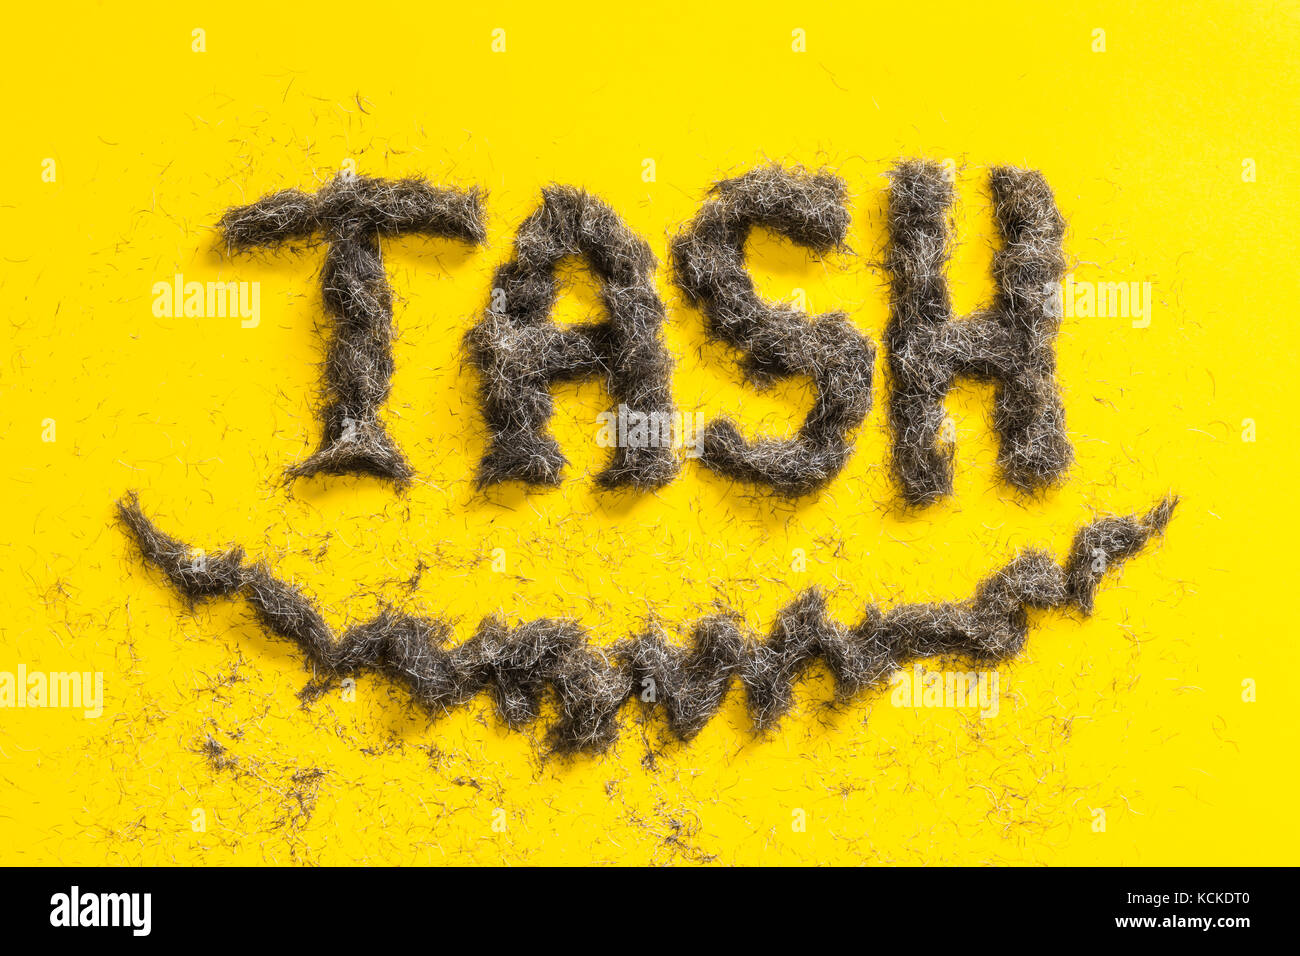 Tash word sign made from real mens beard trimmings on a yellow background. Celebrating movember event - Stock Image